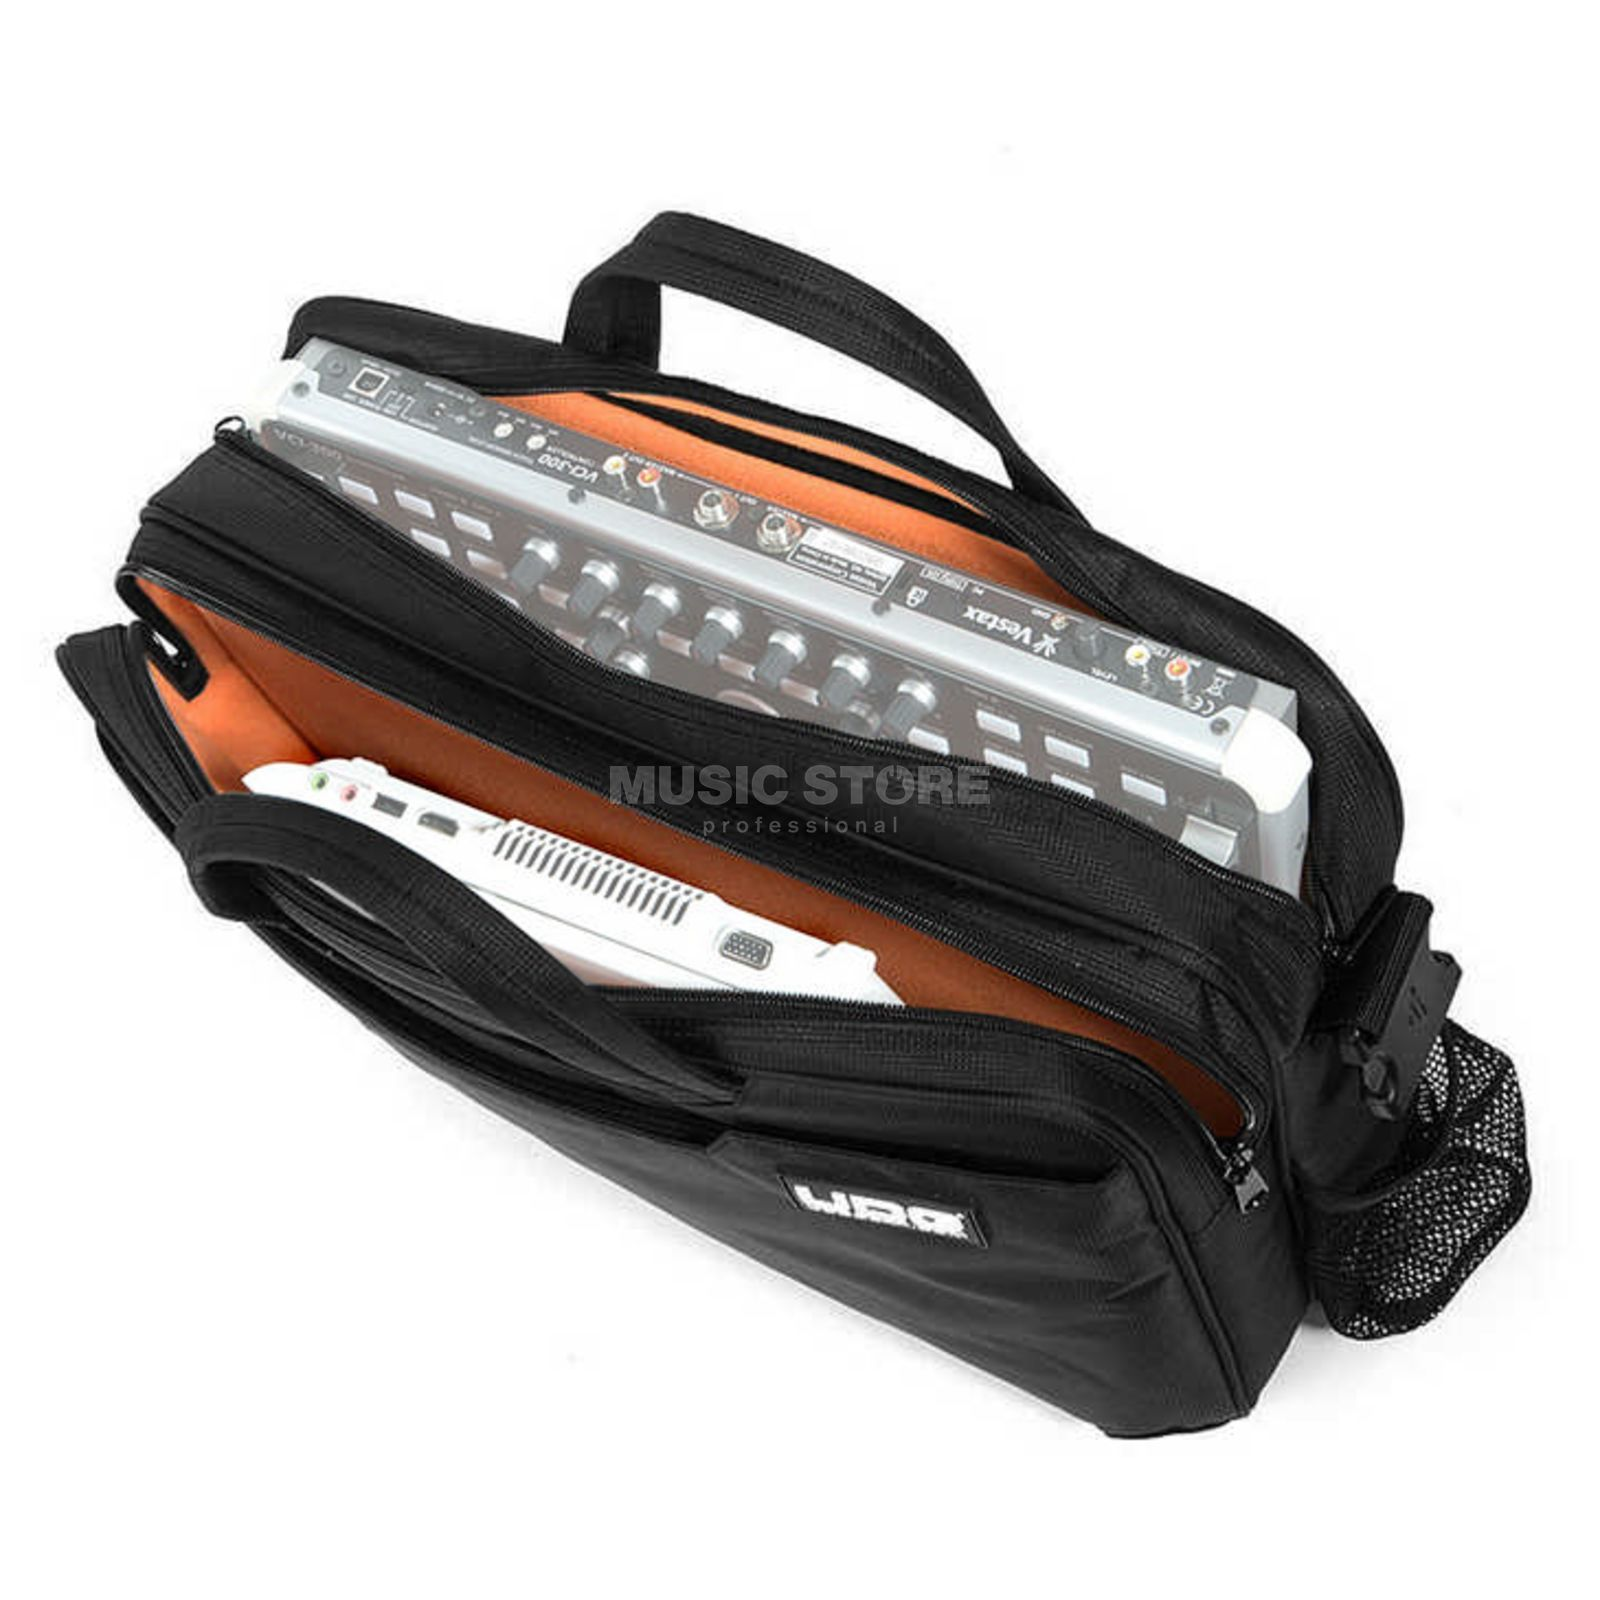 UDG MIDI Controller Bag Black/Orange Inside U9011 Product Image